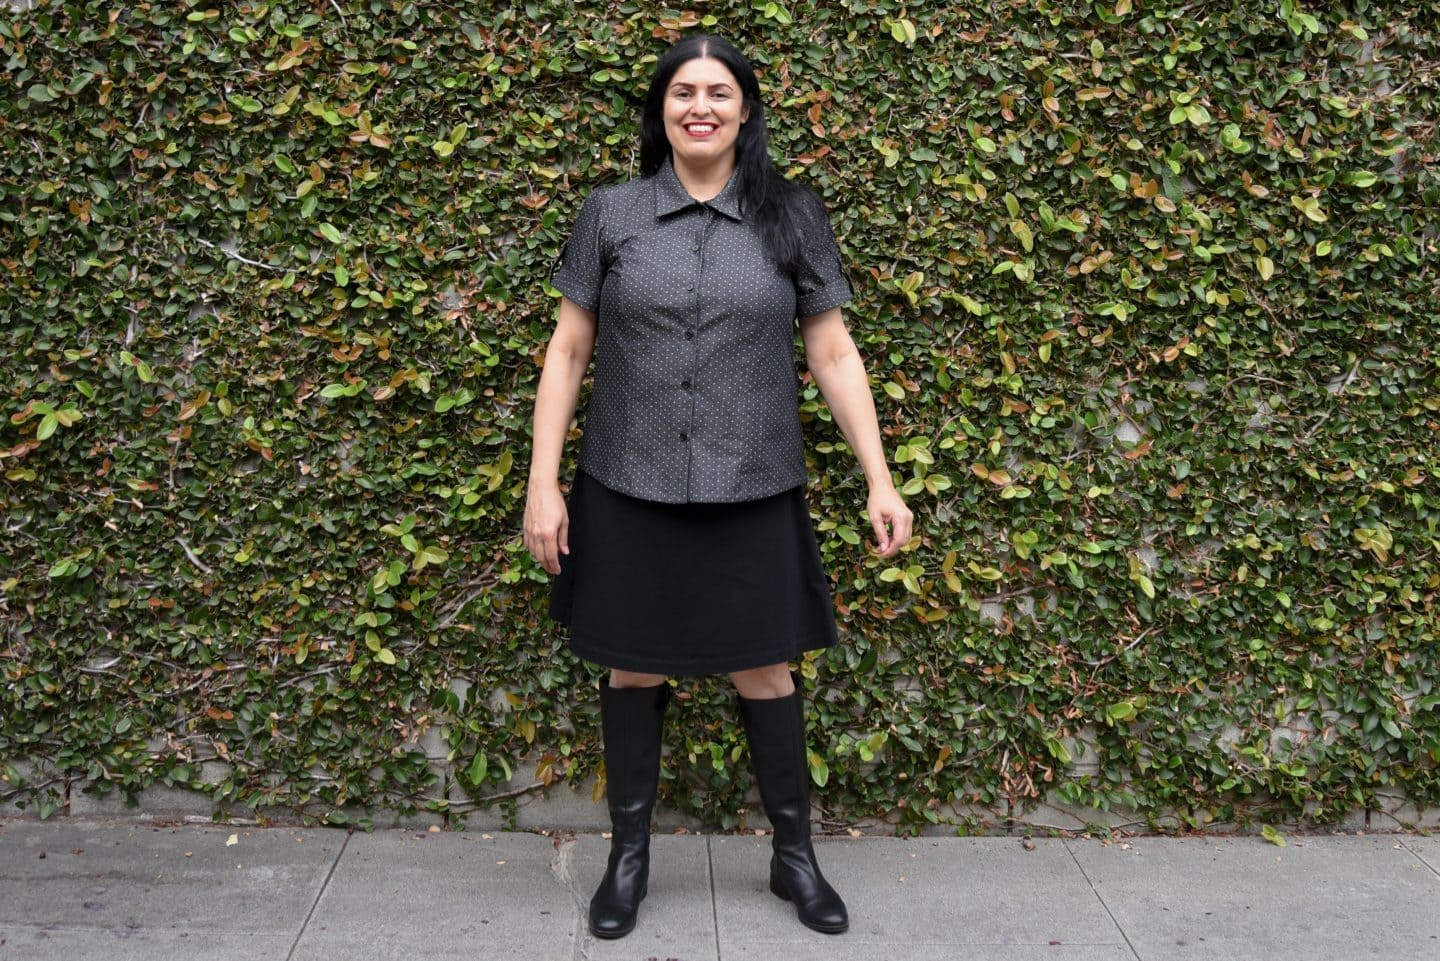 Image of a woman with long black hair standing in front of a wall covered in vine wearing a short-sleeved polka-dotted buttoned up shirt, black knee-length skirt, and black boots to her knees